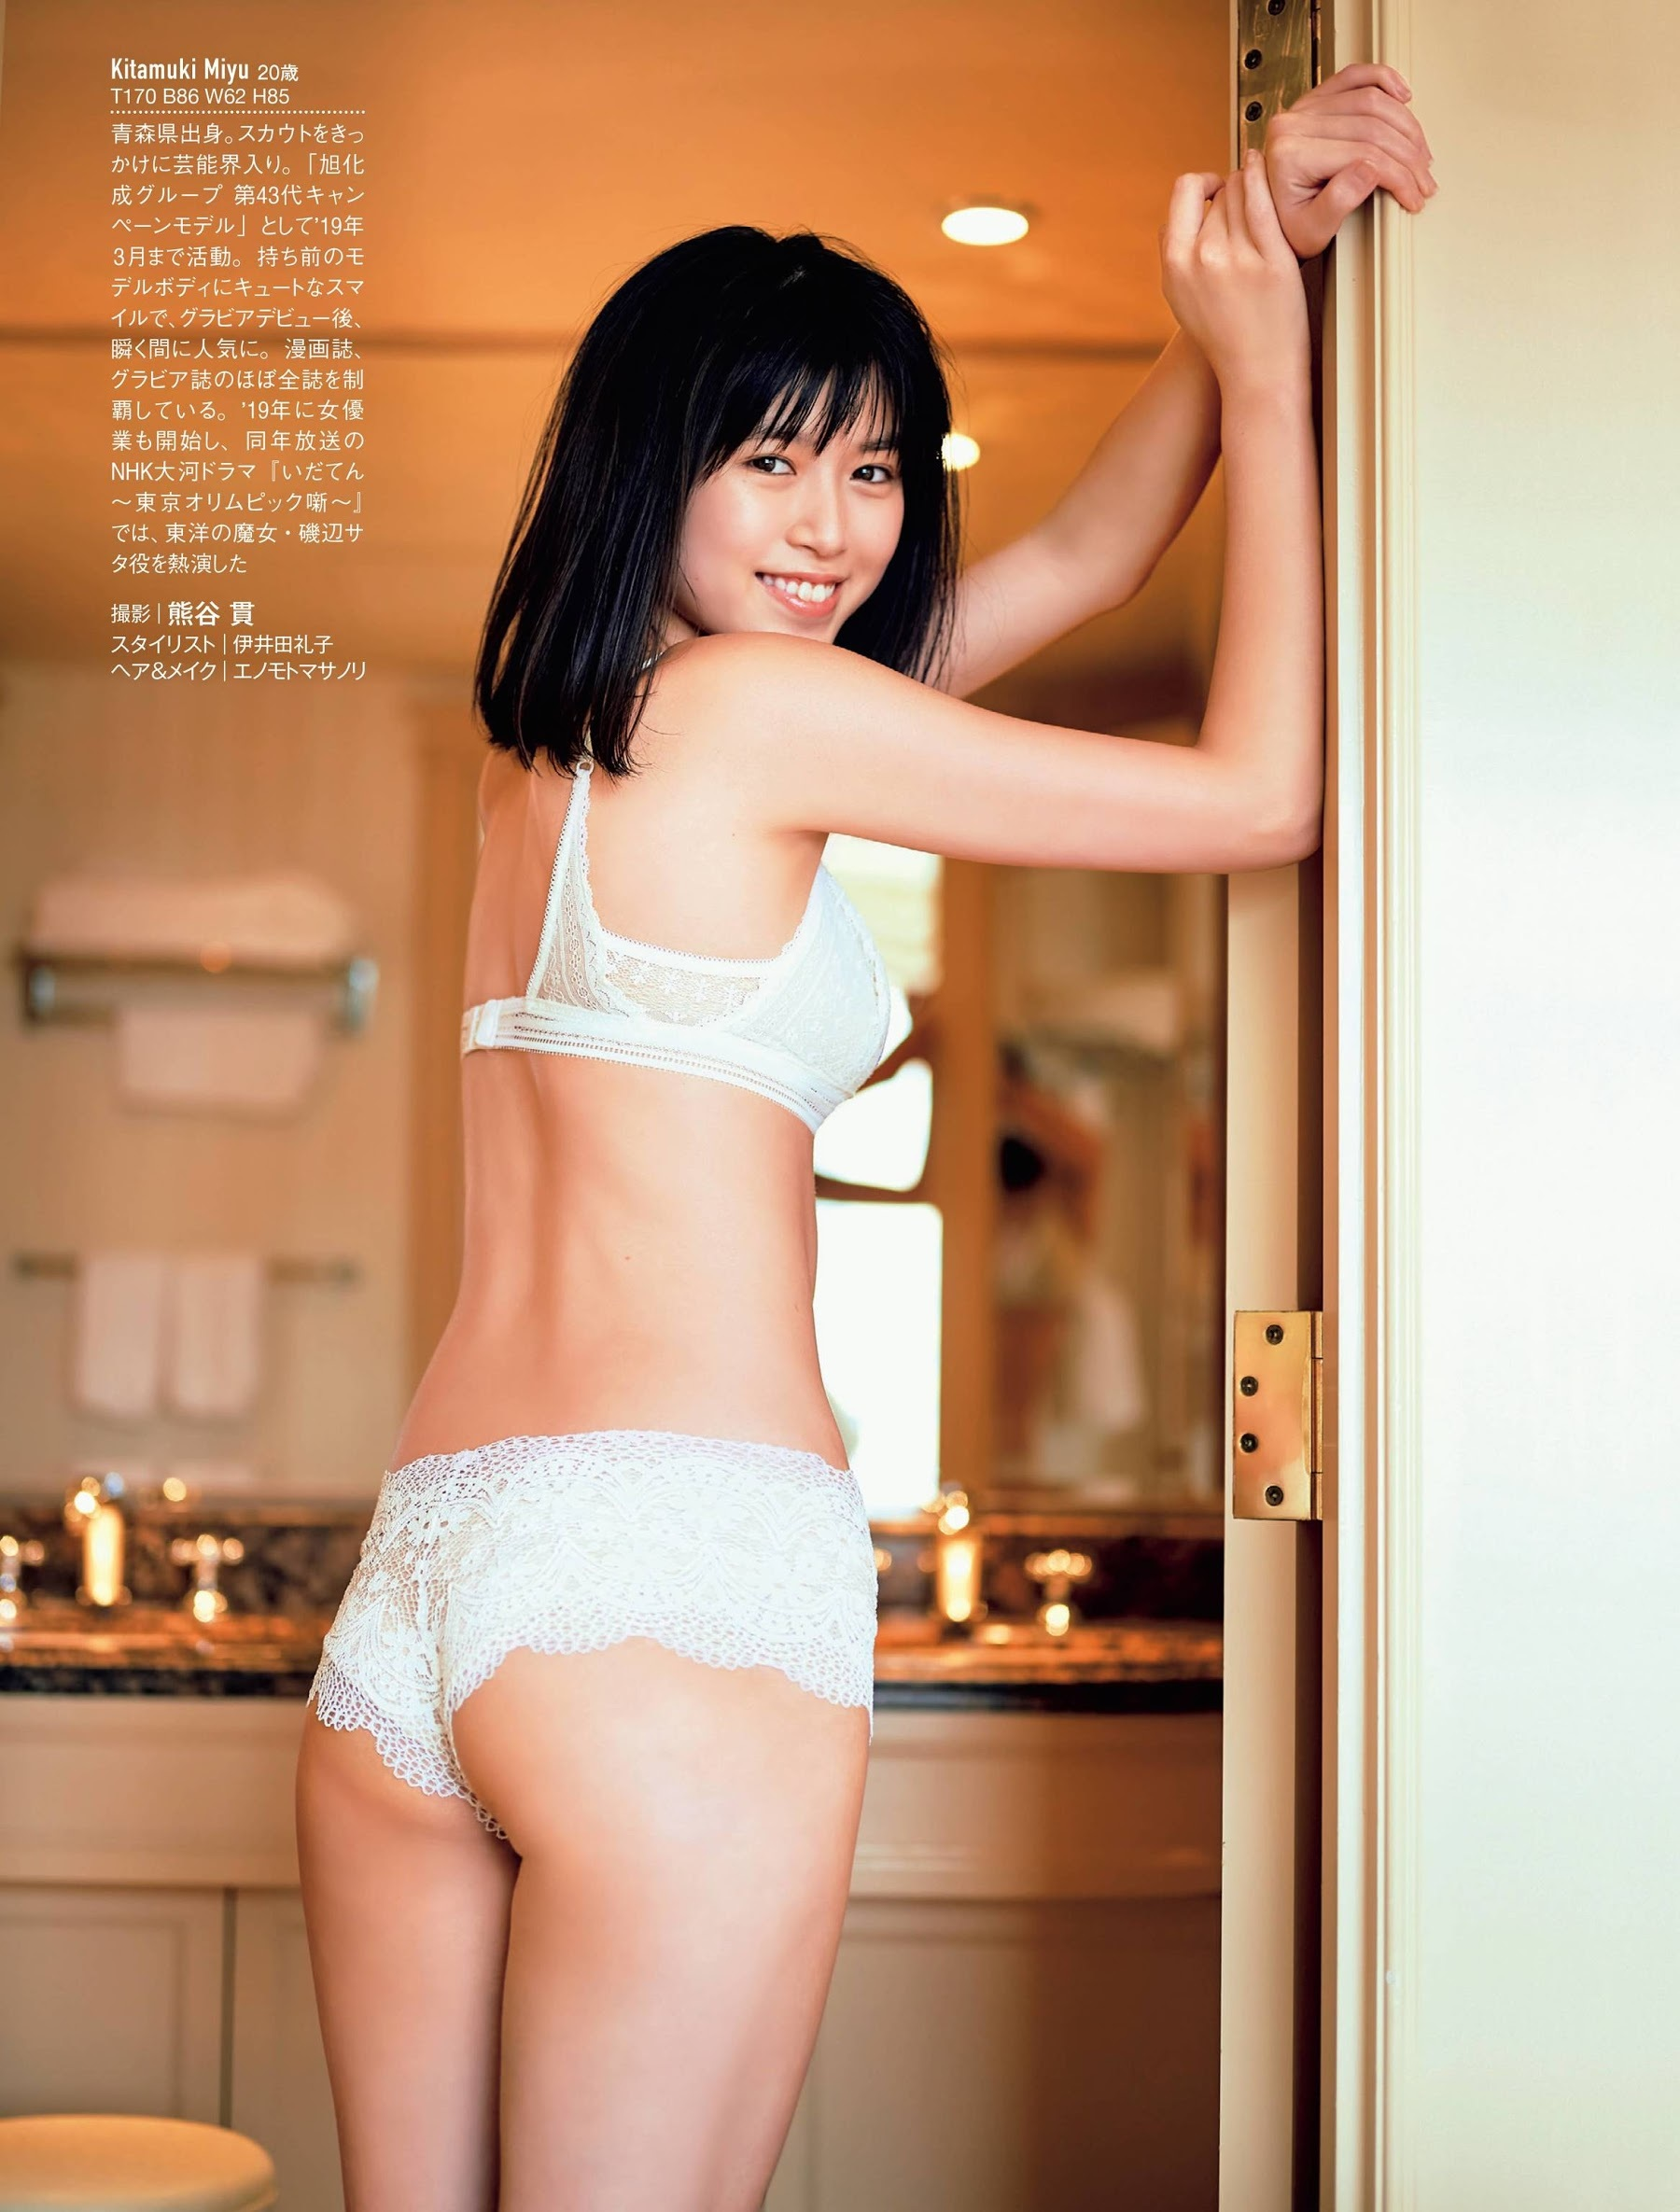 Tamayu Kitamuki Swimsuit Gravure The slender beauty who turned 20 years old challenges the new frontier of bold sexiness 2020005